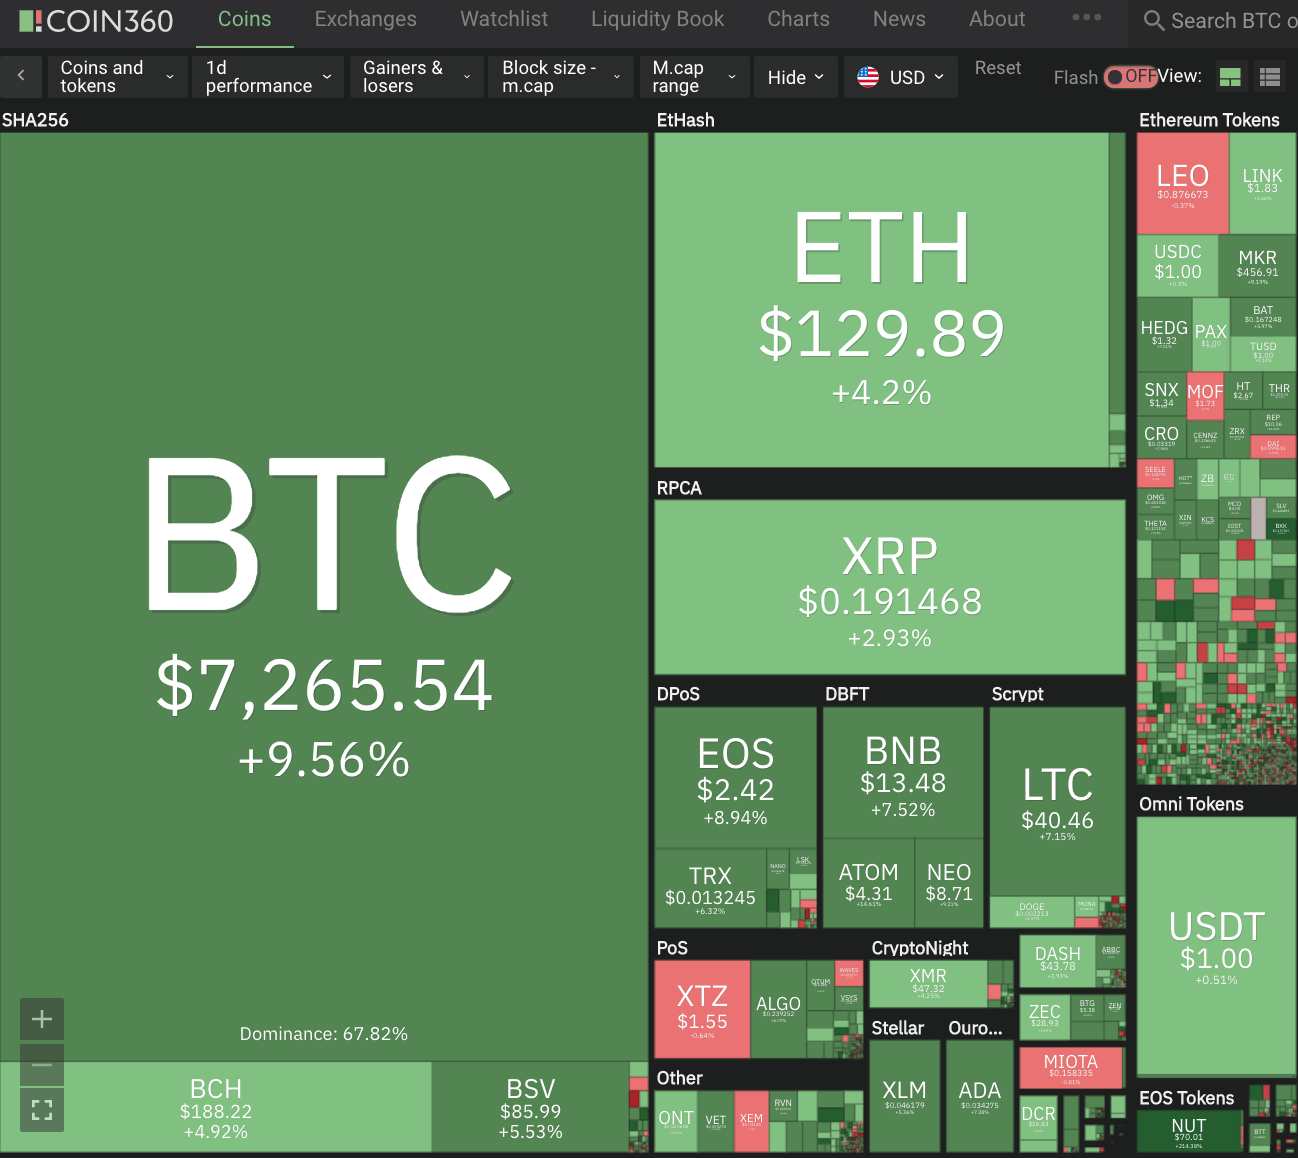 Cryptocurrency Double Digit+ Gains #245